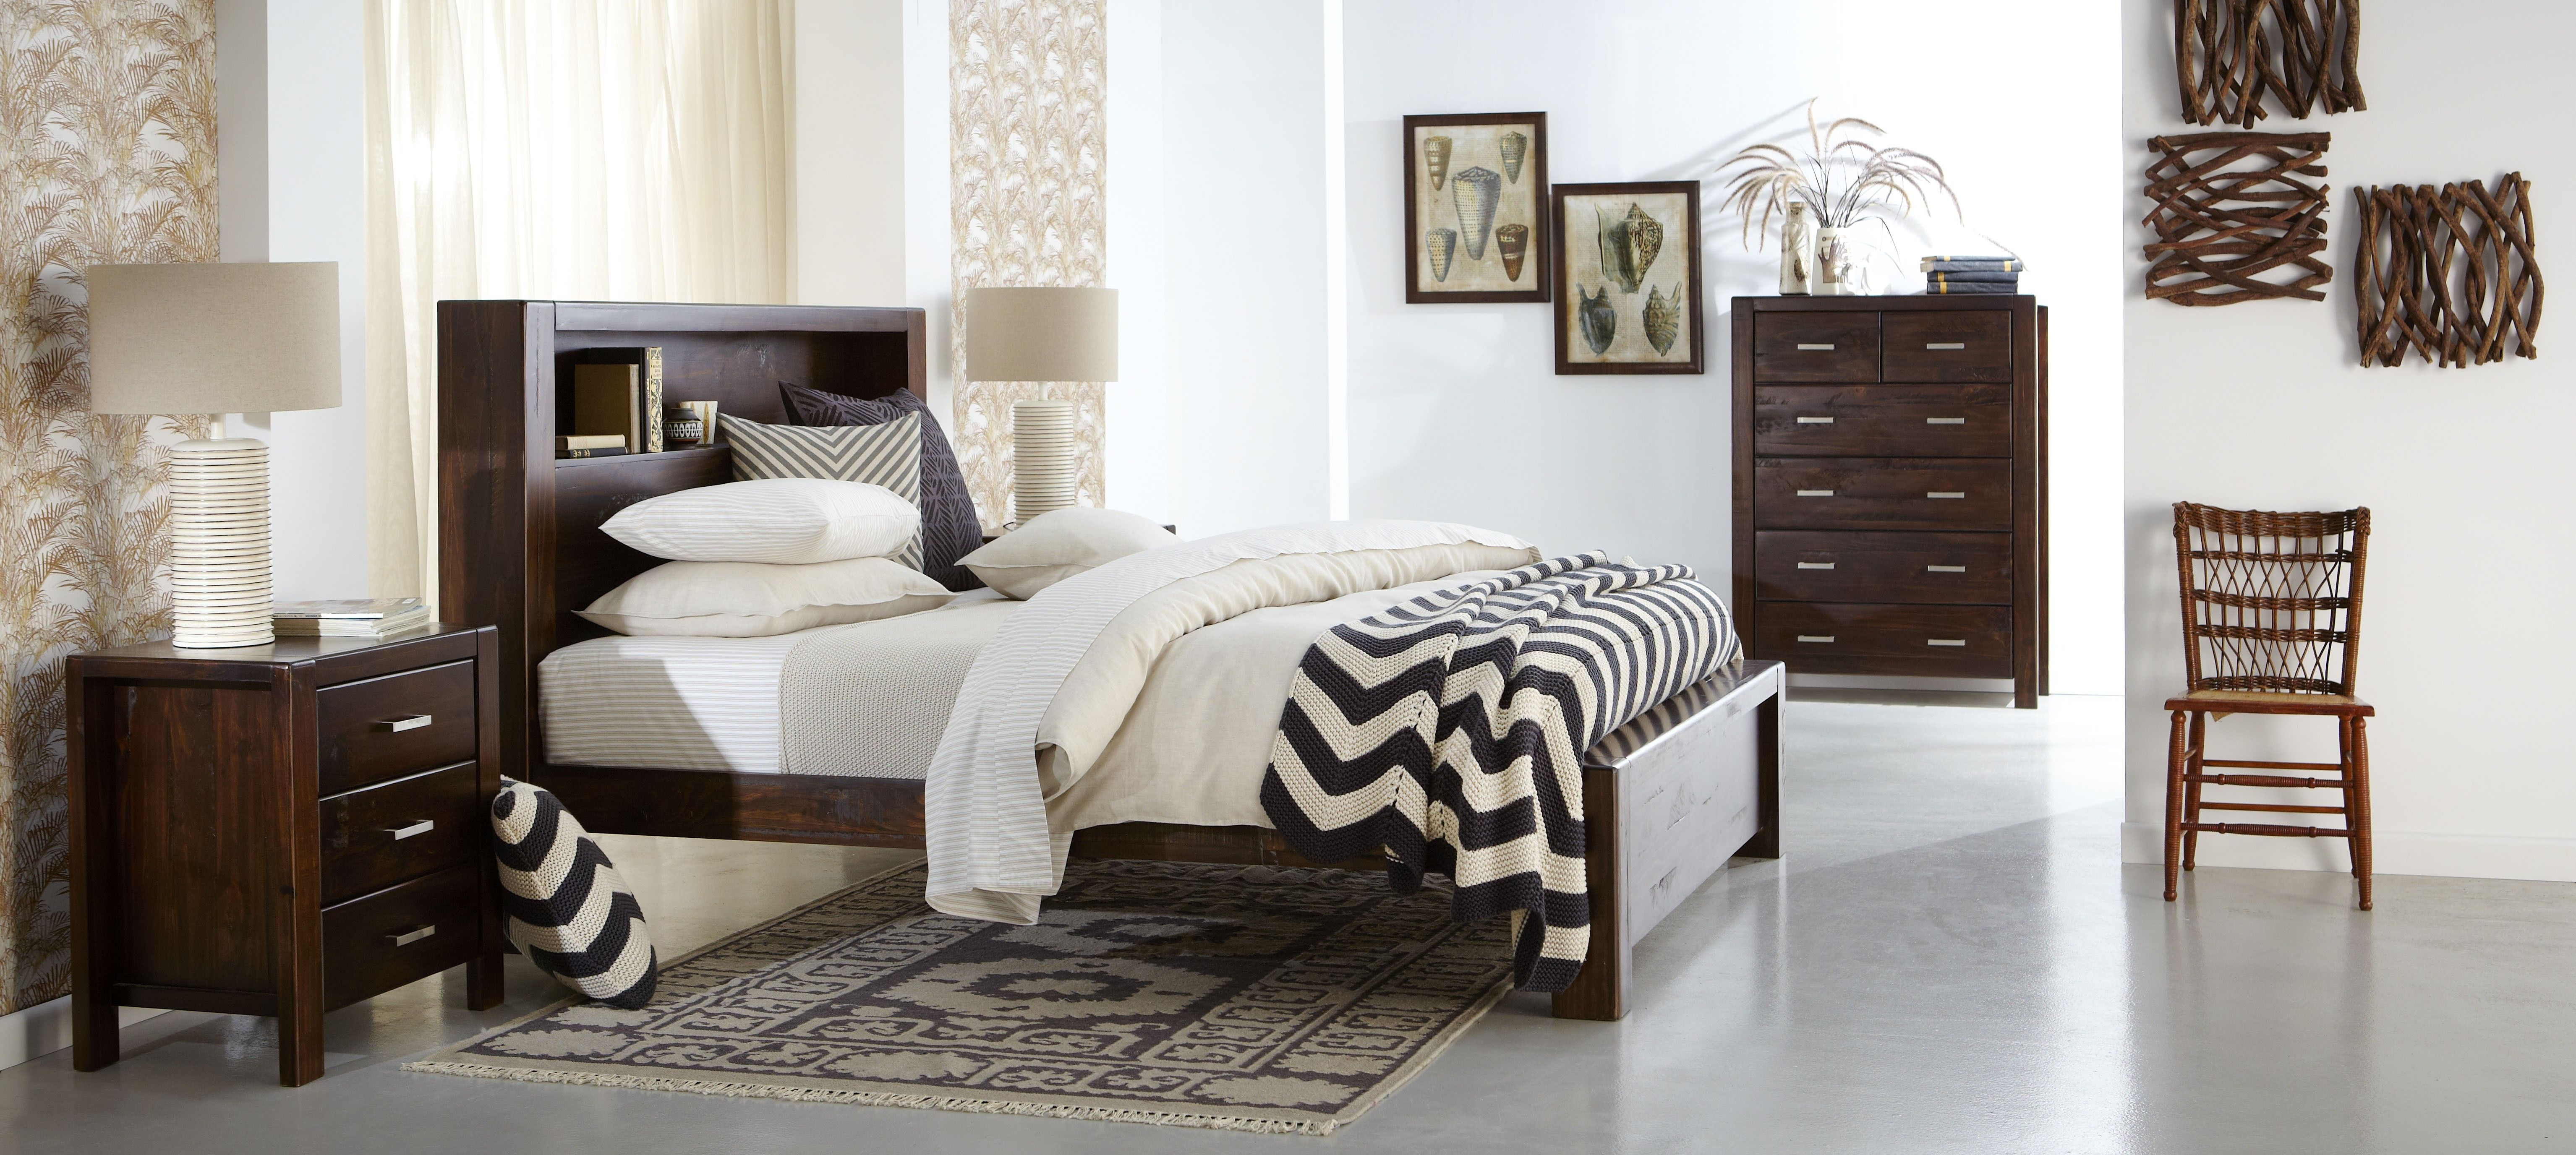 Longreach Bedroom Furniture - Crafted from New Zealand pine, this ...